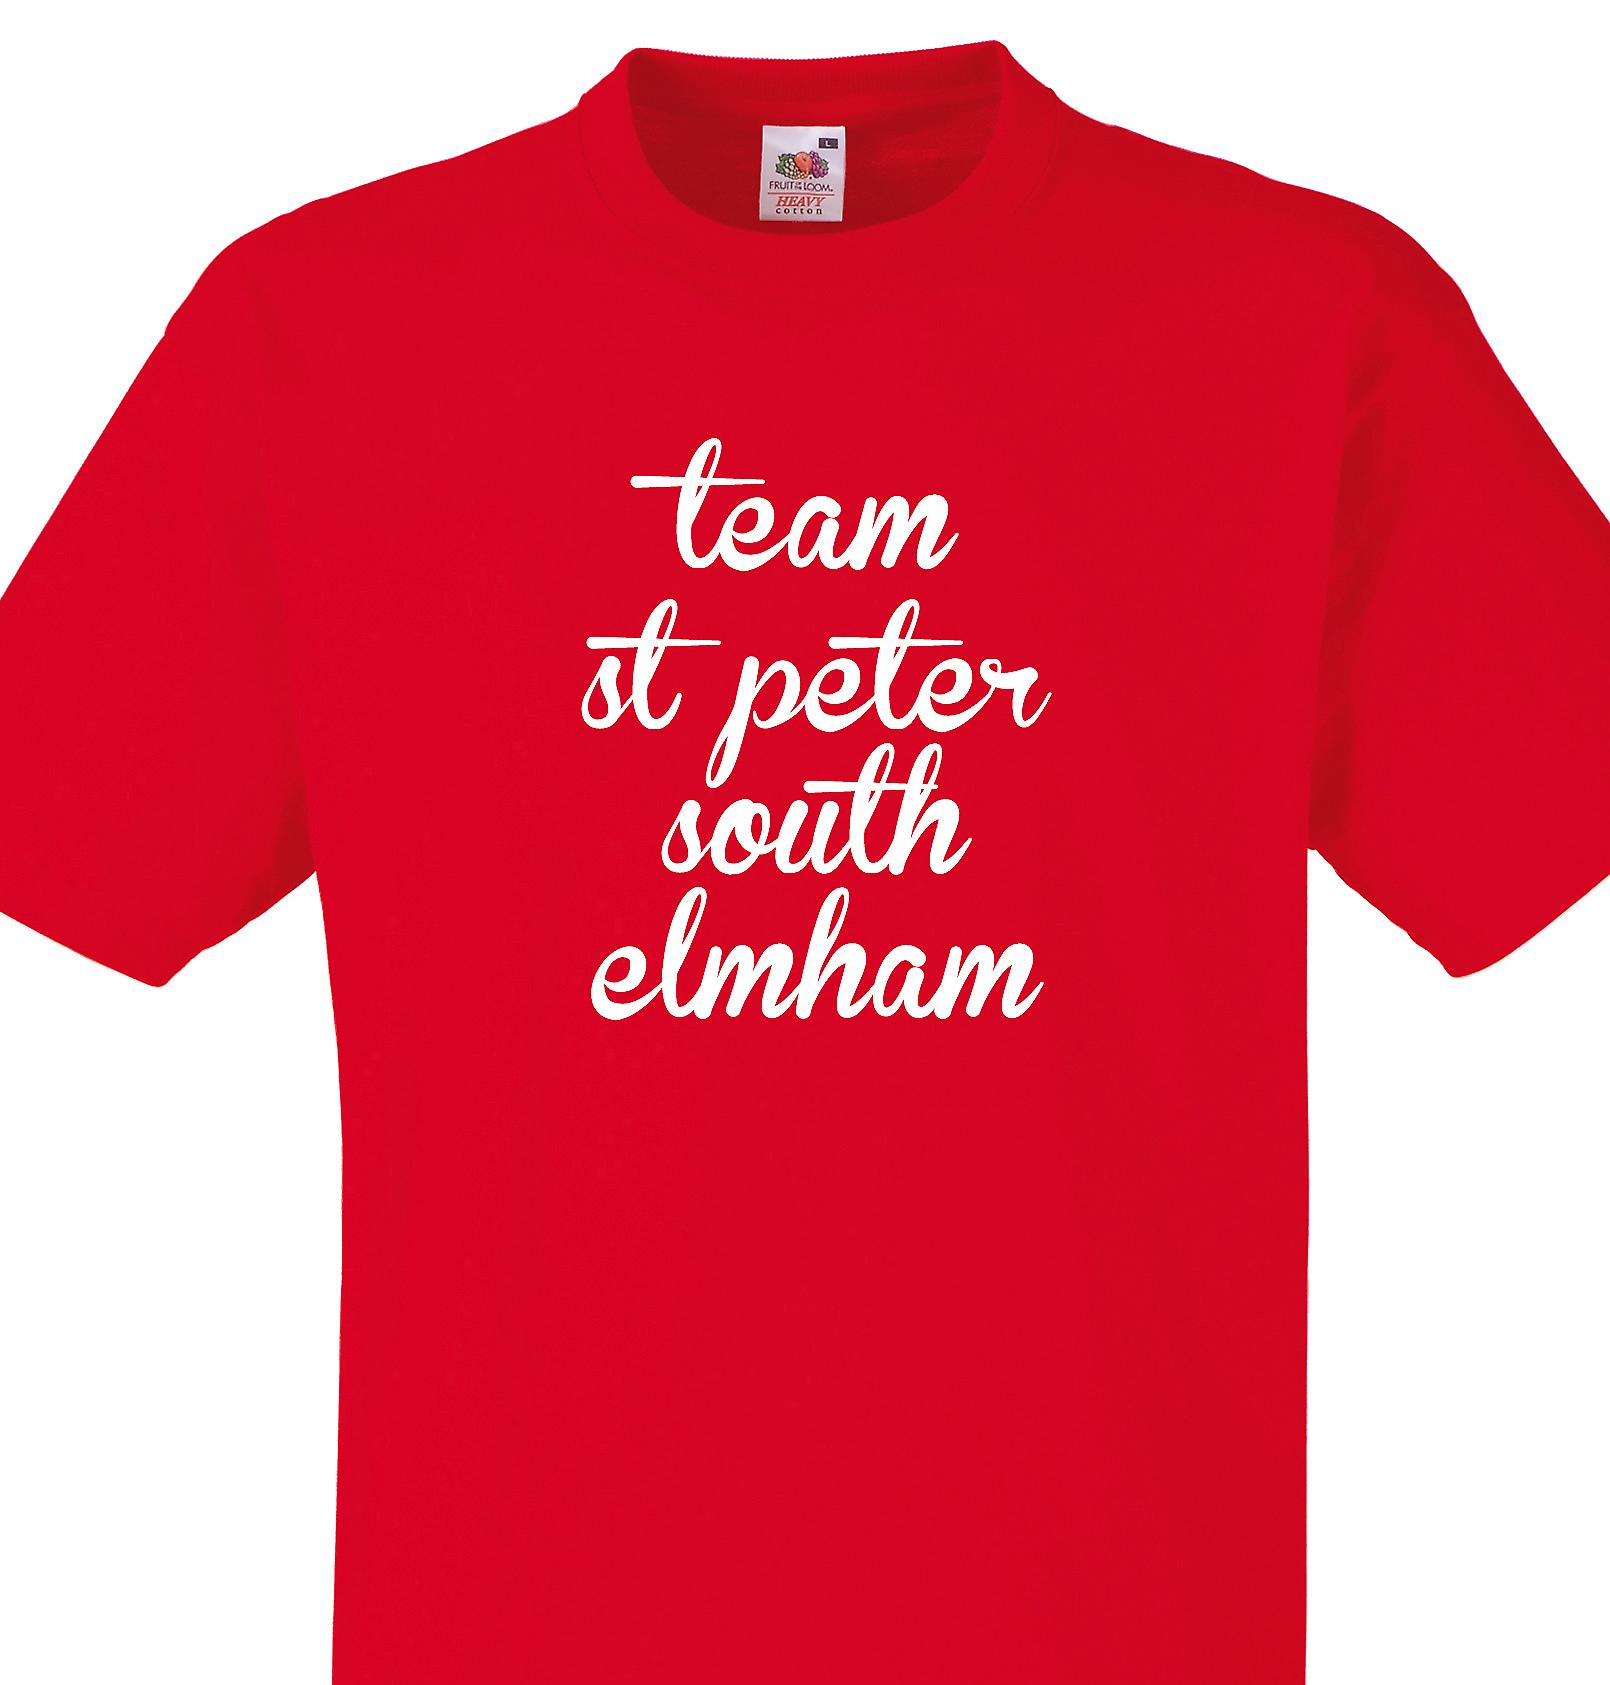 Team St peter south elmham Red T shirt